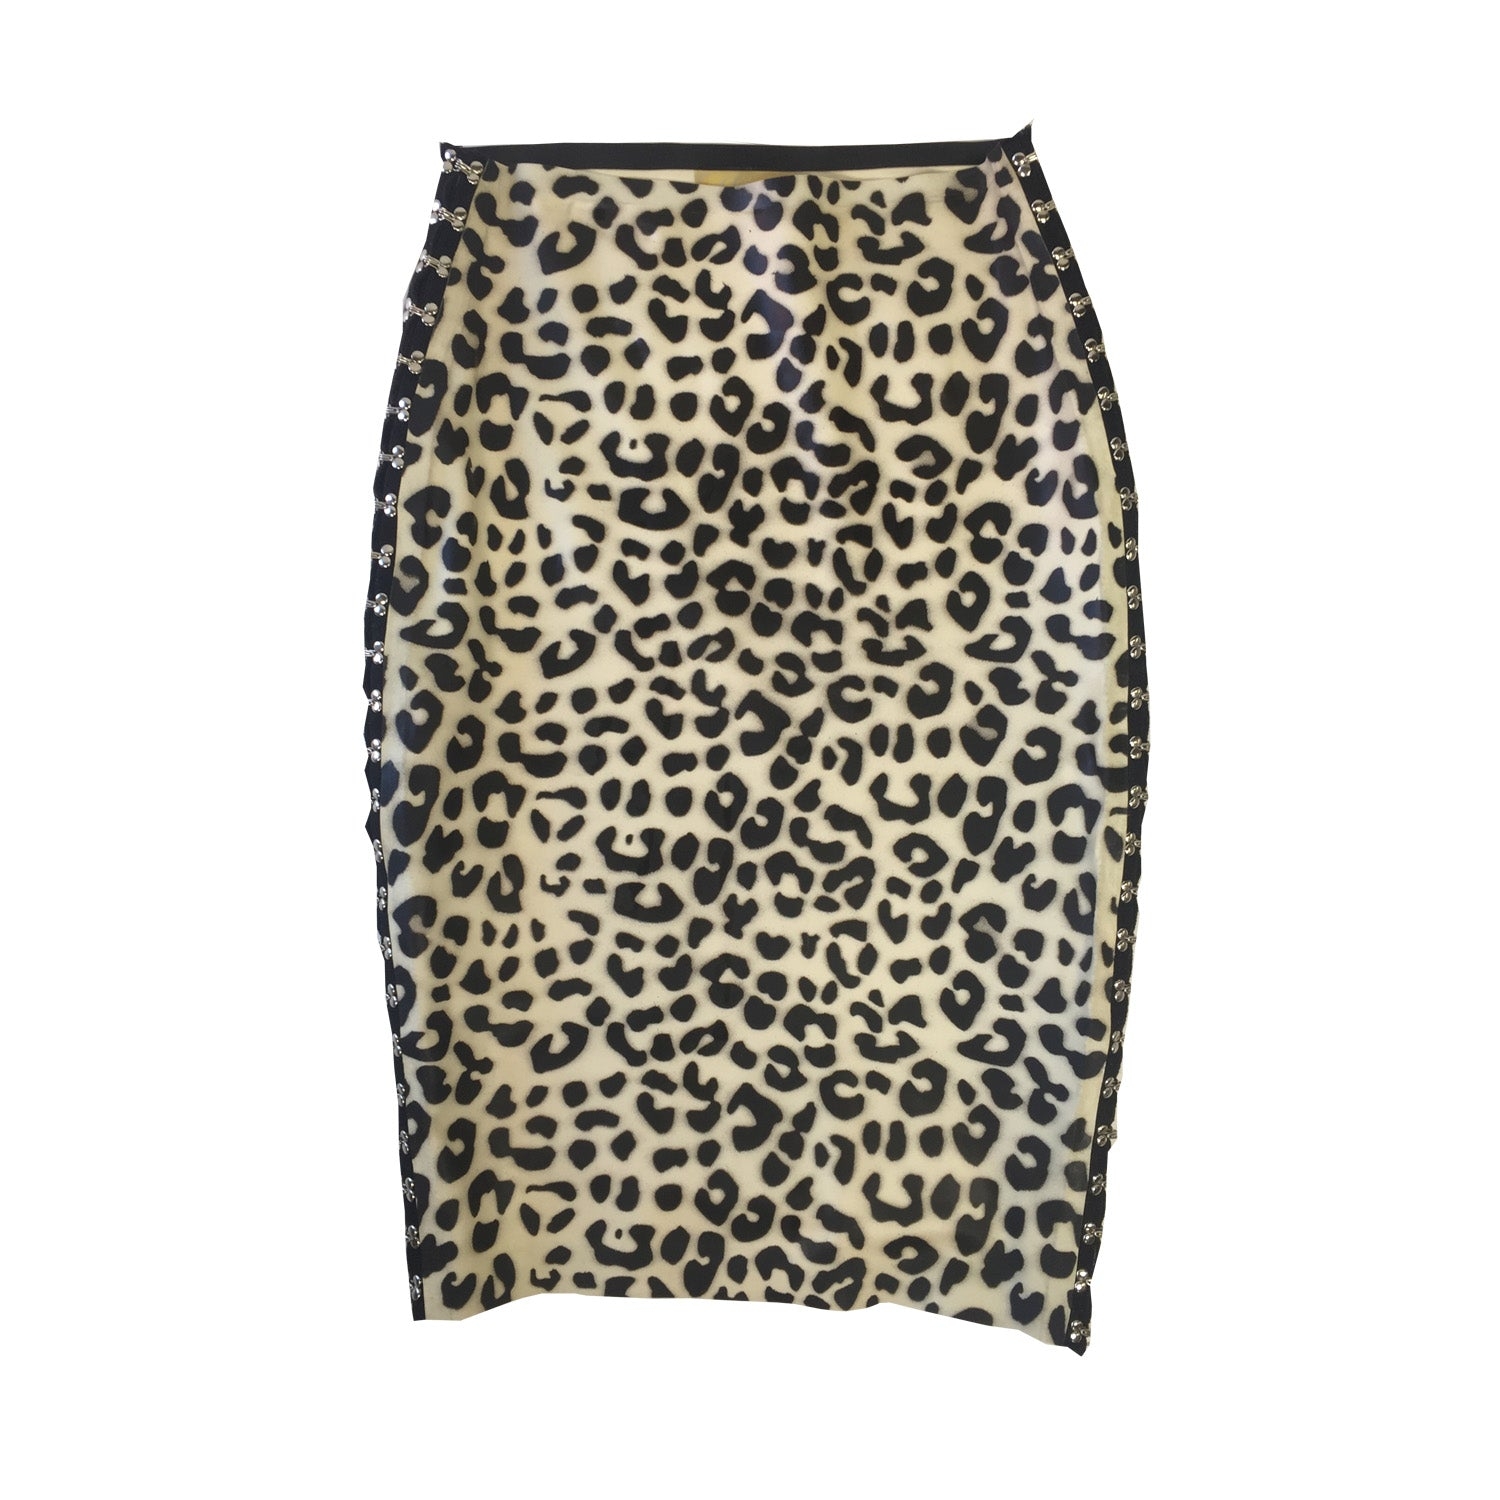 TNT Print Pencil Skirt - Vex Inc. | Latex Clothing